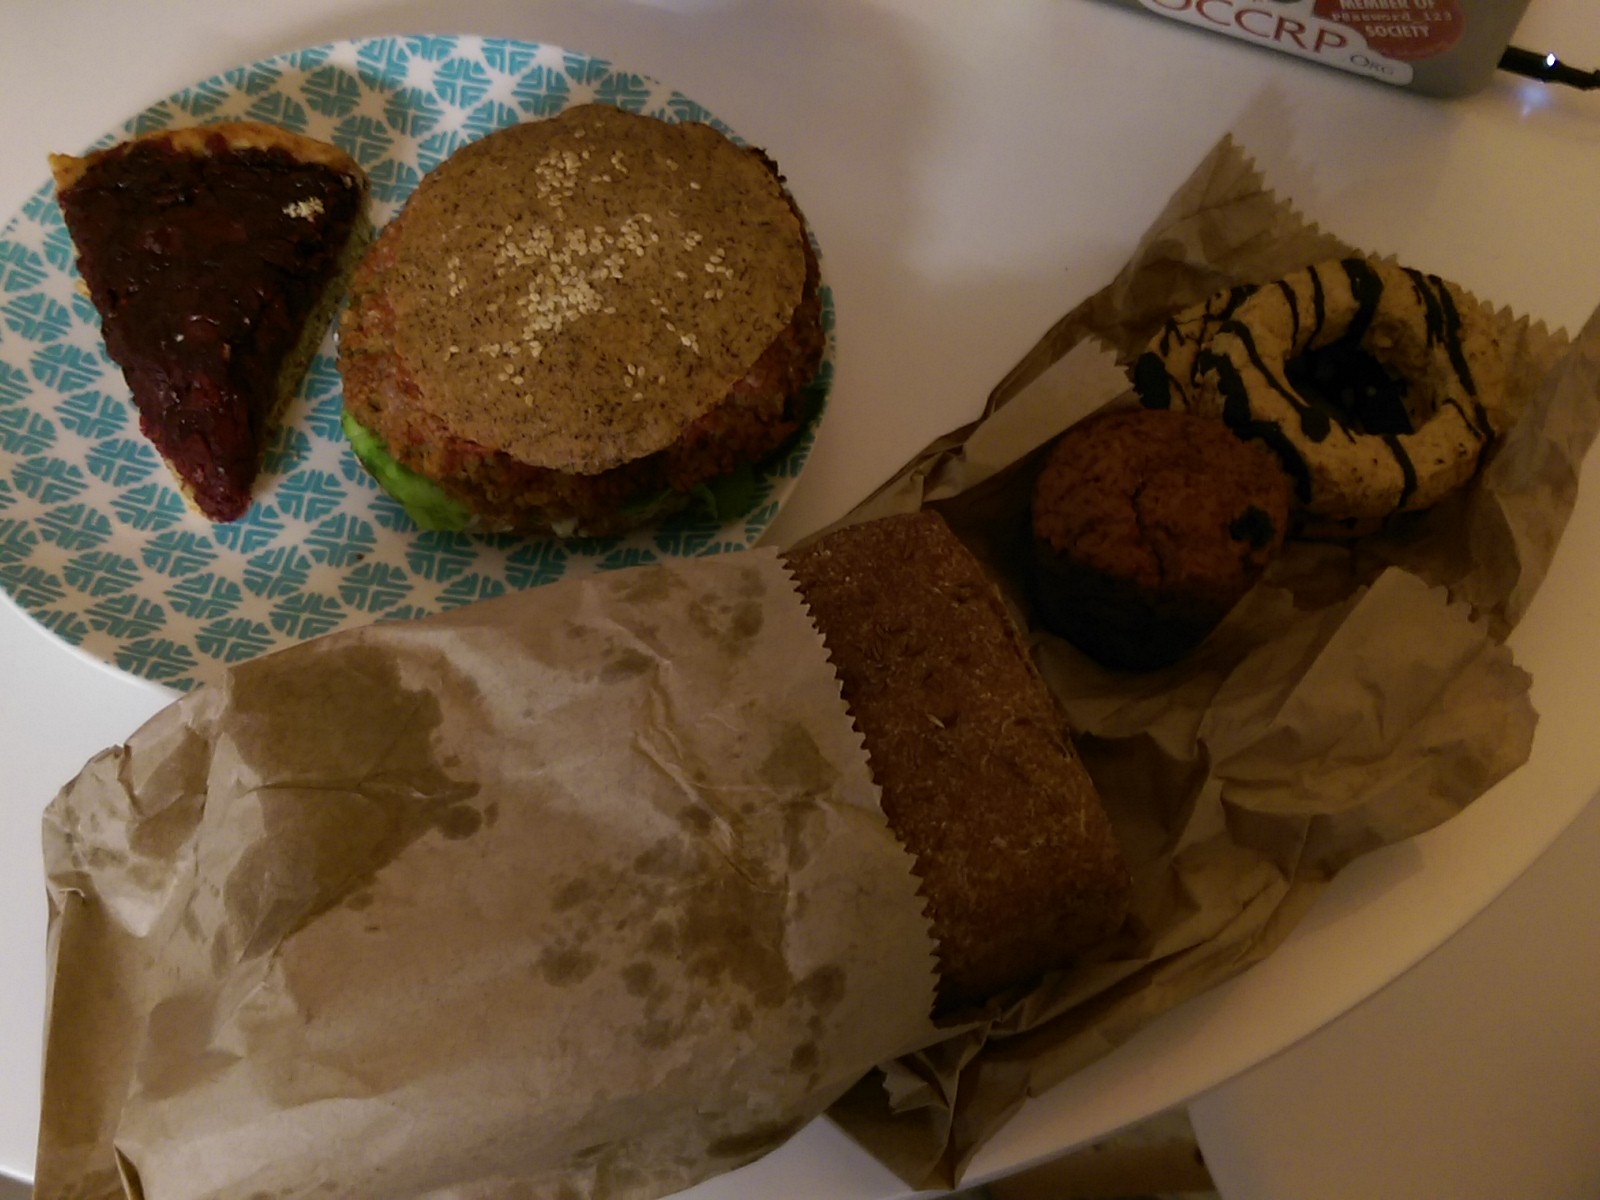 Pie and a burger on a plate from above, next to a loaf of bred in a brown paper bag and cookies